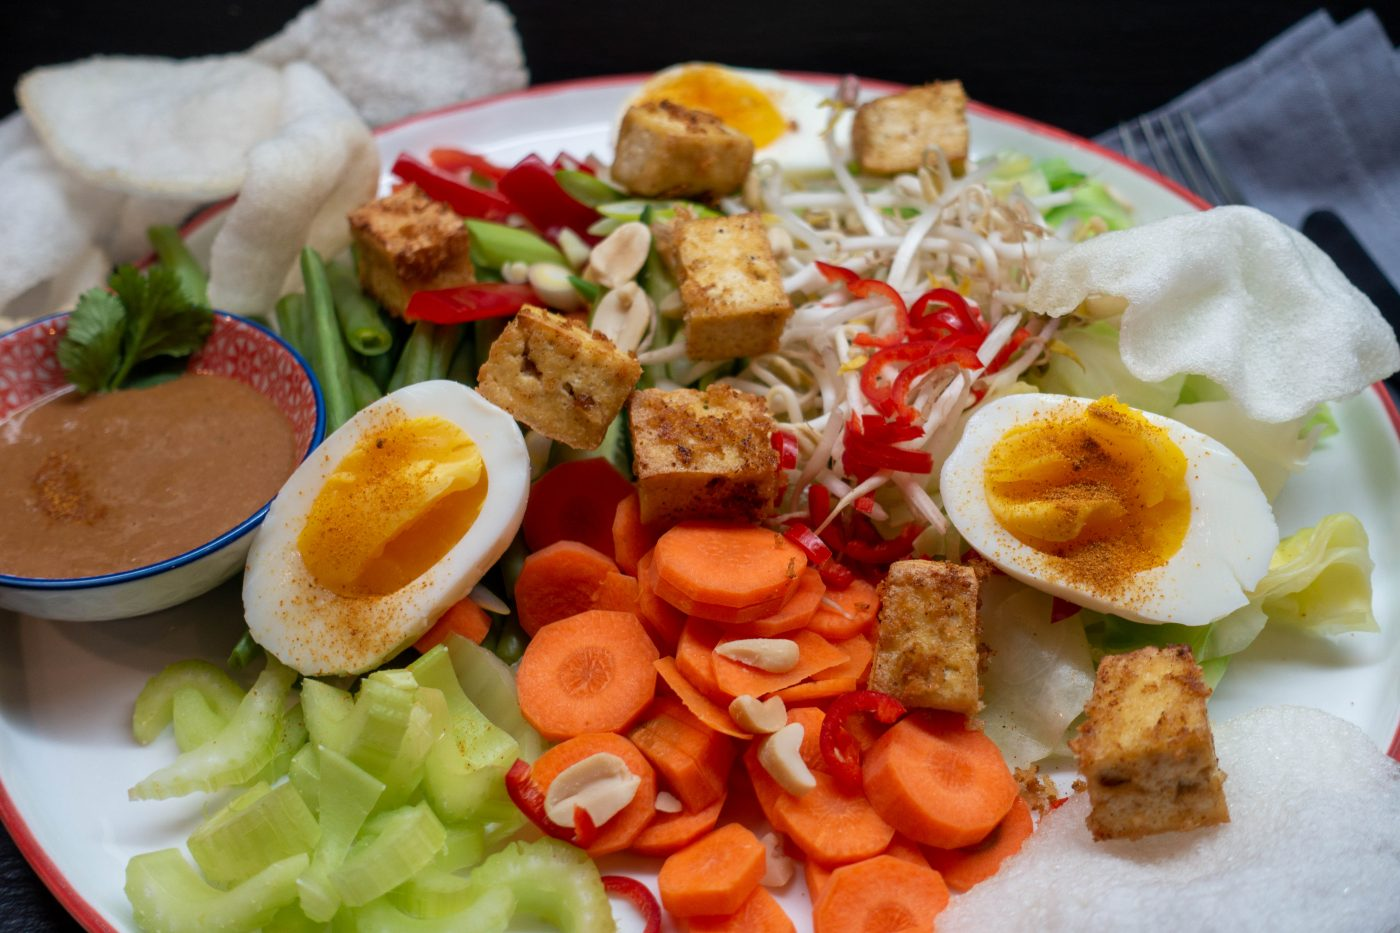 Indonesian Gado Gado, a colorful vegetable plate with boiled egg halves, fried tofu, krupuk and peanut sauce